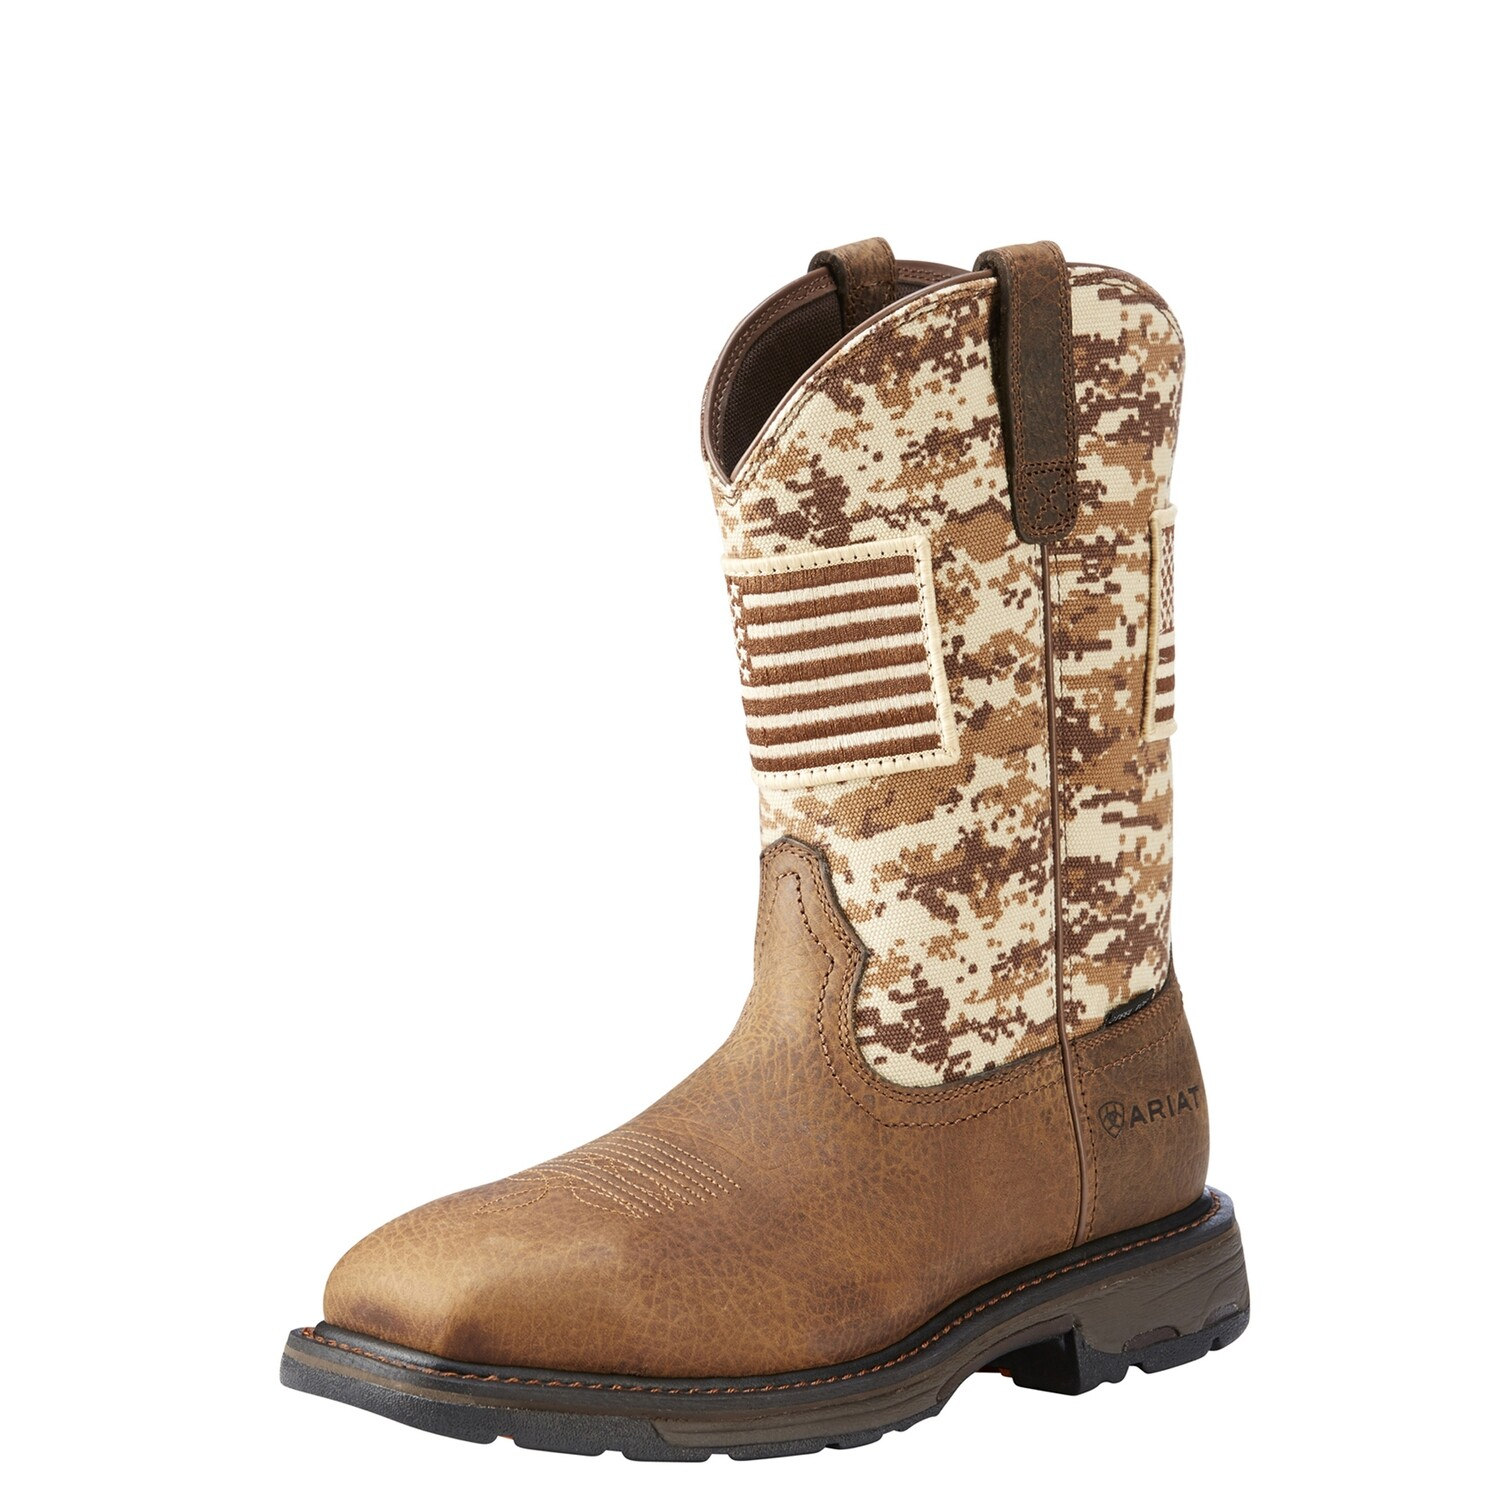 10022968 MNS WORKHOG PATRIOT ST EARTH SAND CAMO